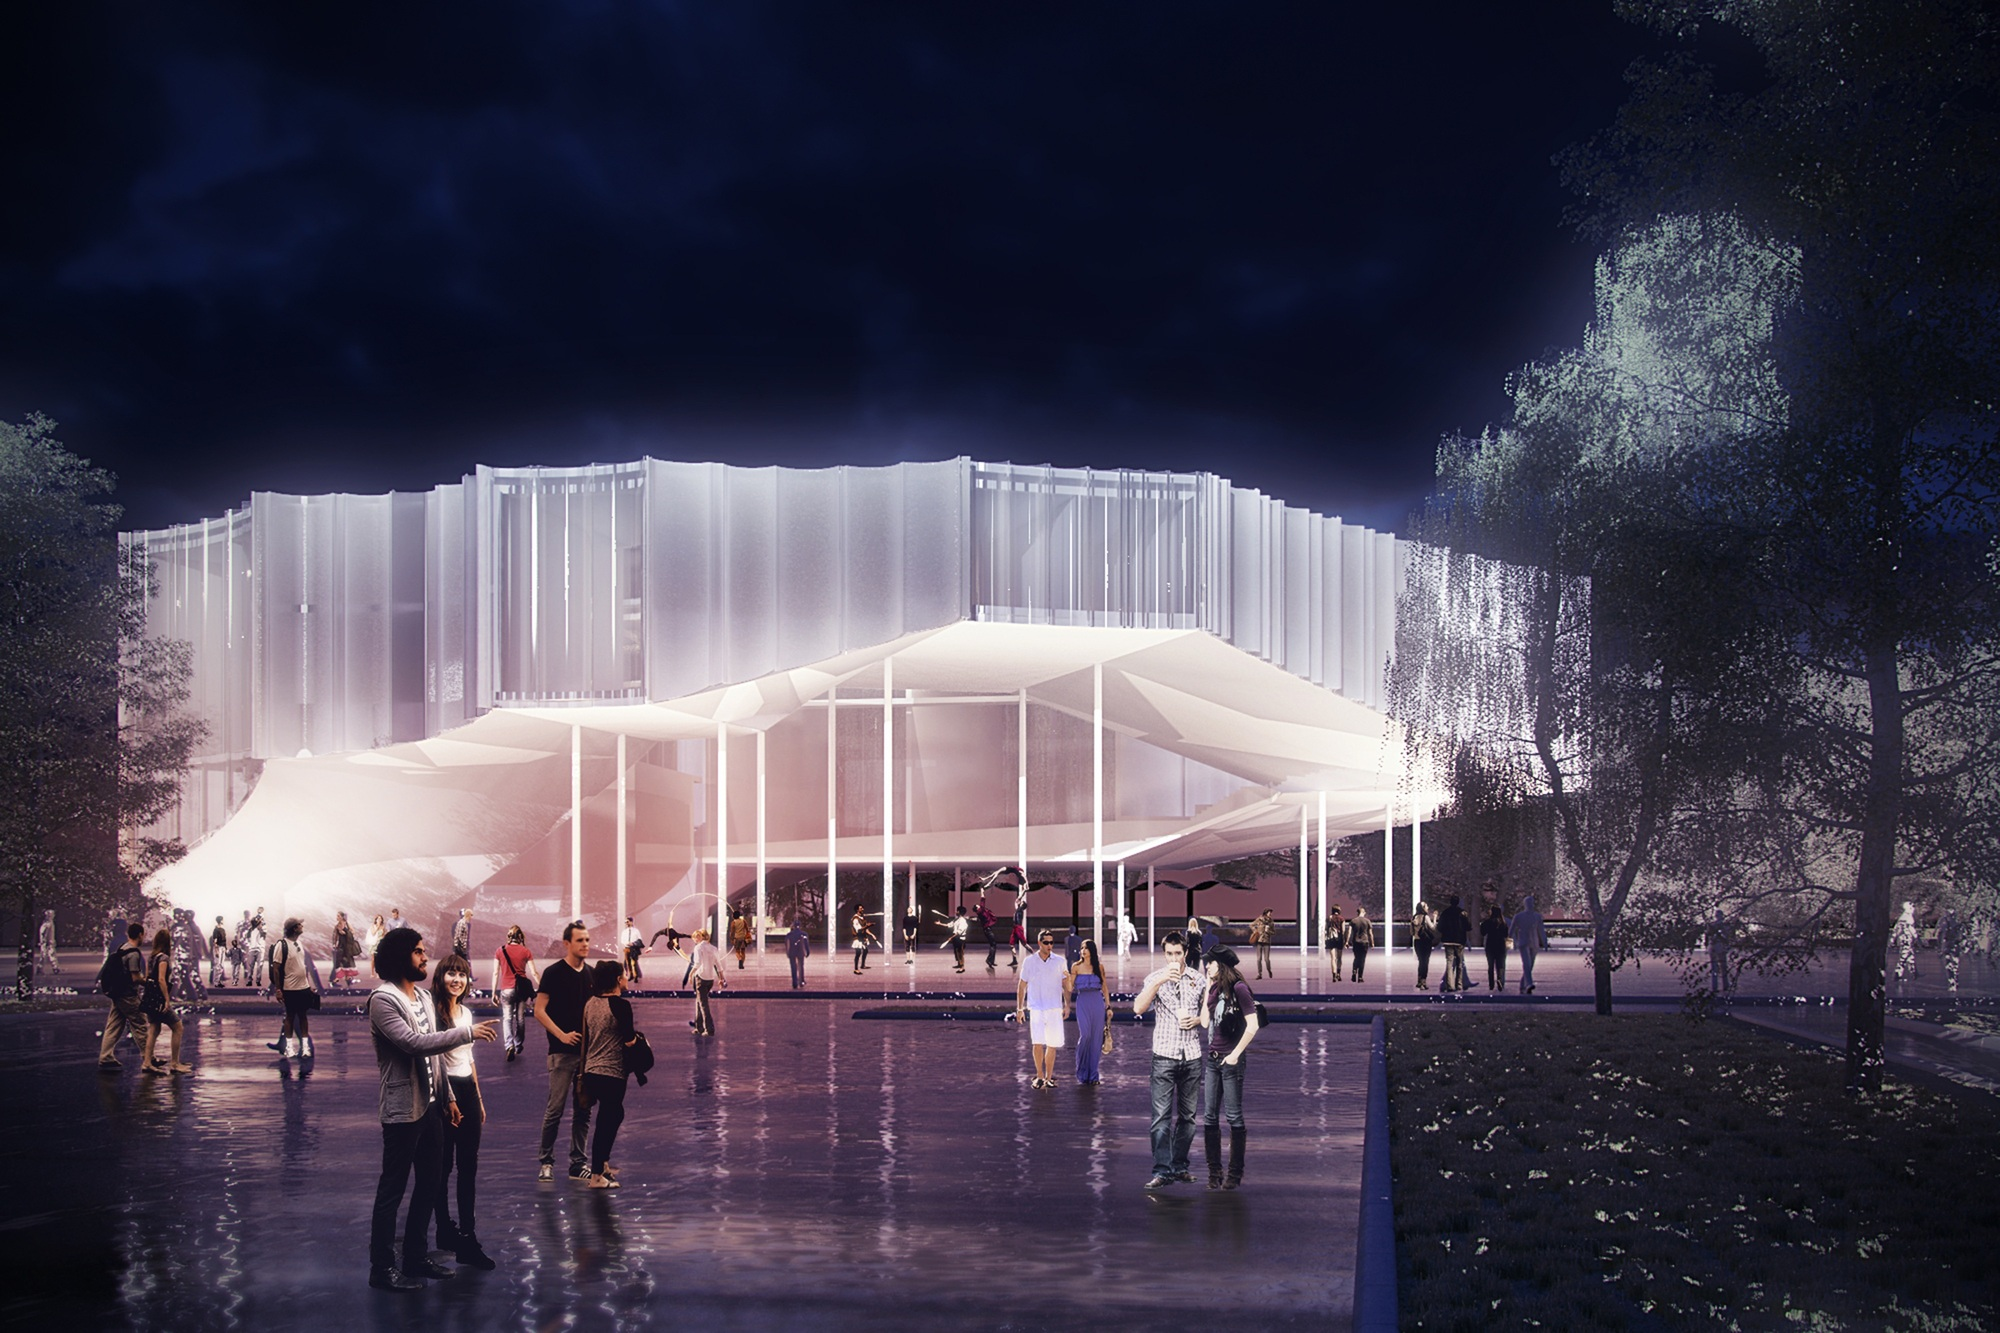 Regensburg Events Höweler + Yoon Architecture Unveils Circus Conservatory